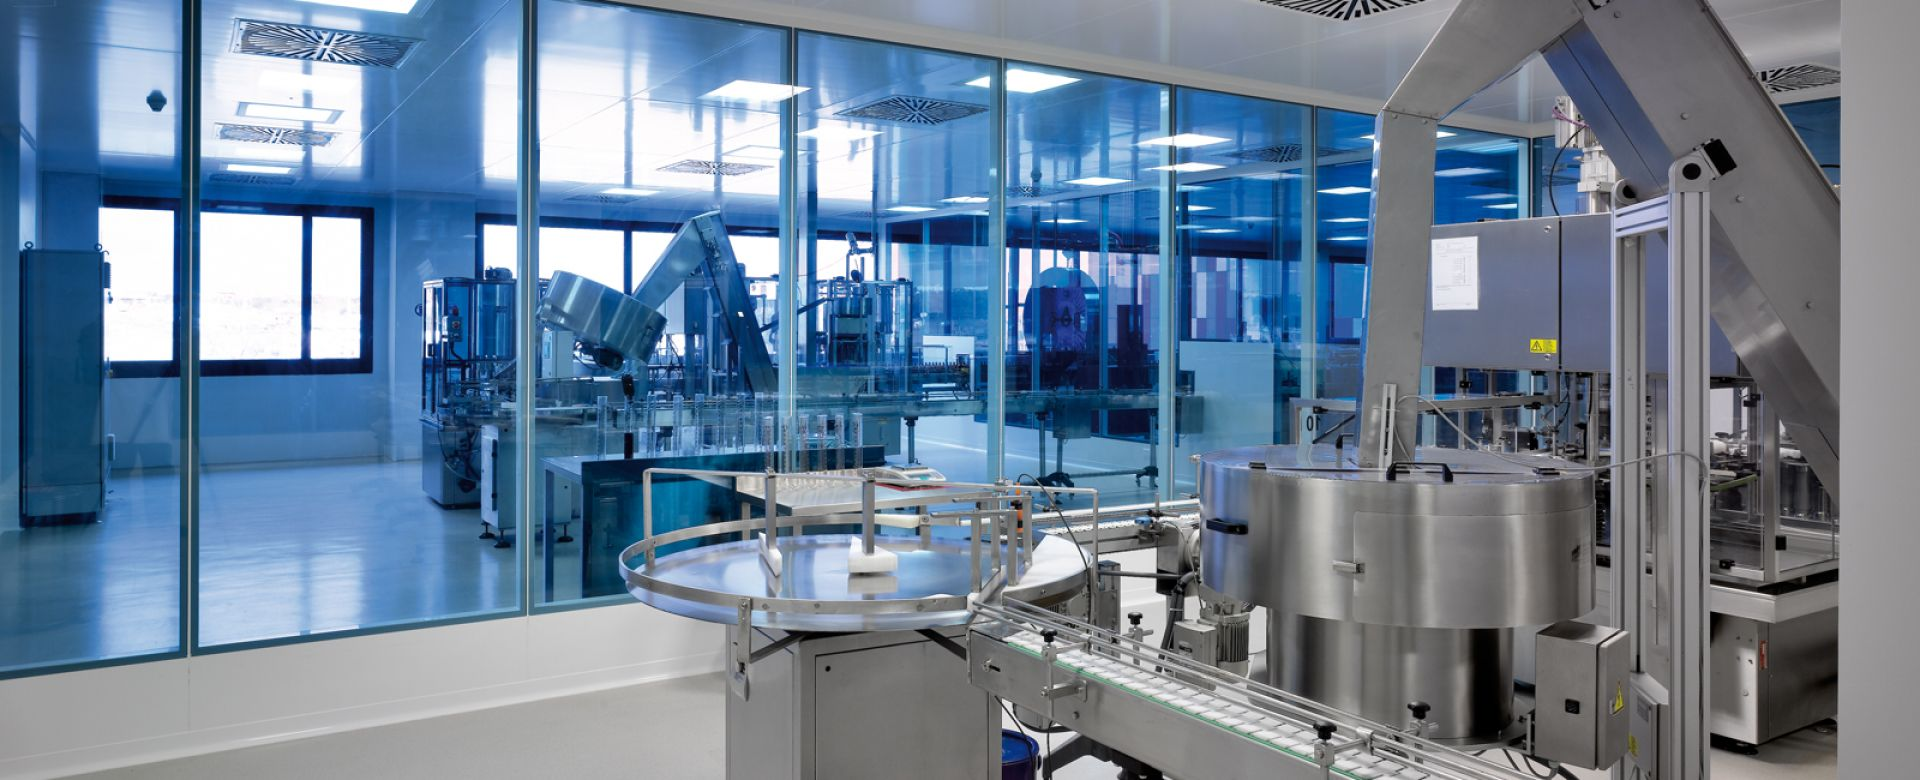 Clestra Cleanroom : Cloison pour salle blanche